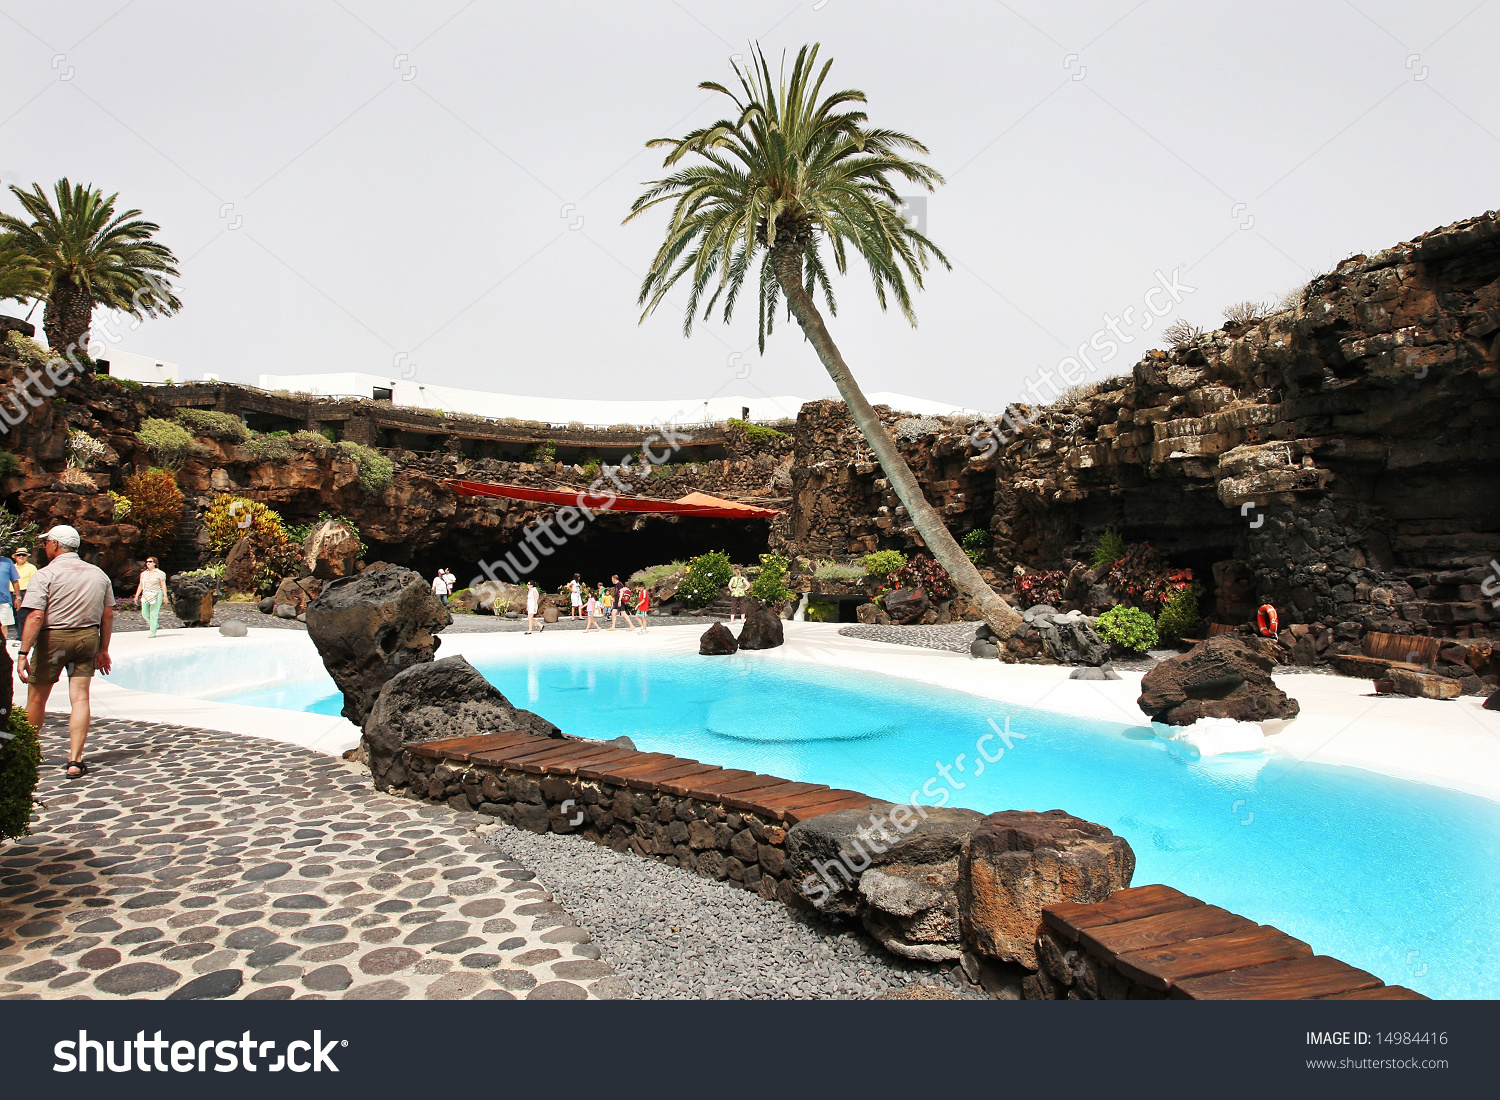 Swimming Pool In The Jameos Del Agua. Lanzarote.Spain. Stock Photo.